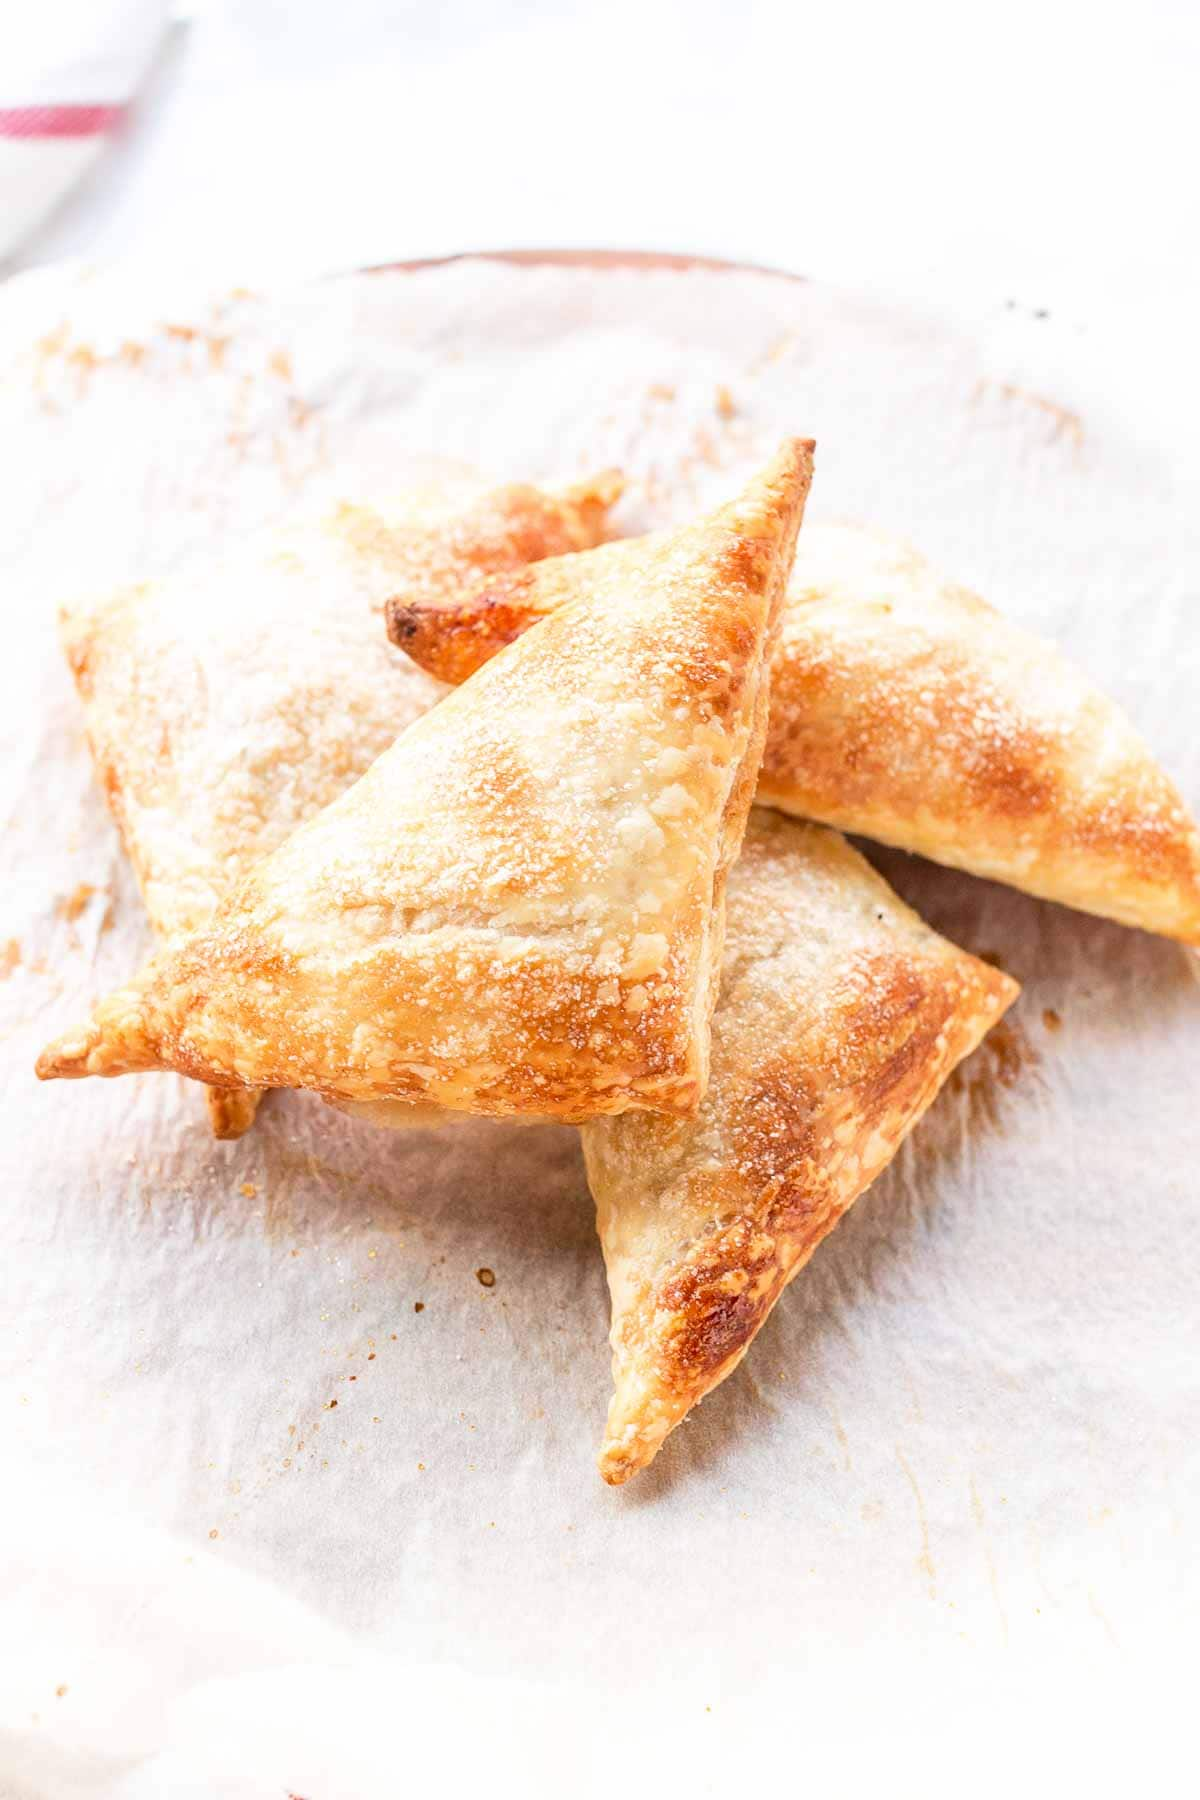 Looking for a sweet pastry dessert? Try these puff pastry apple turnovers. Made with homemade apple pie filling and done in less than 30 minutes. Visit fastfoodbistro.com for the full recipe #fastfoodbistro #appleturnovers #puffpastryappleturnovers #dessert